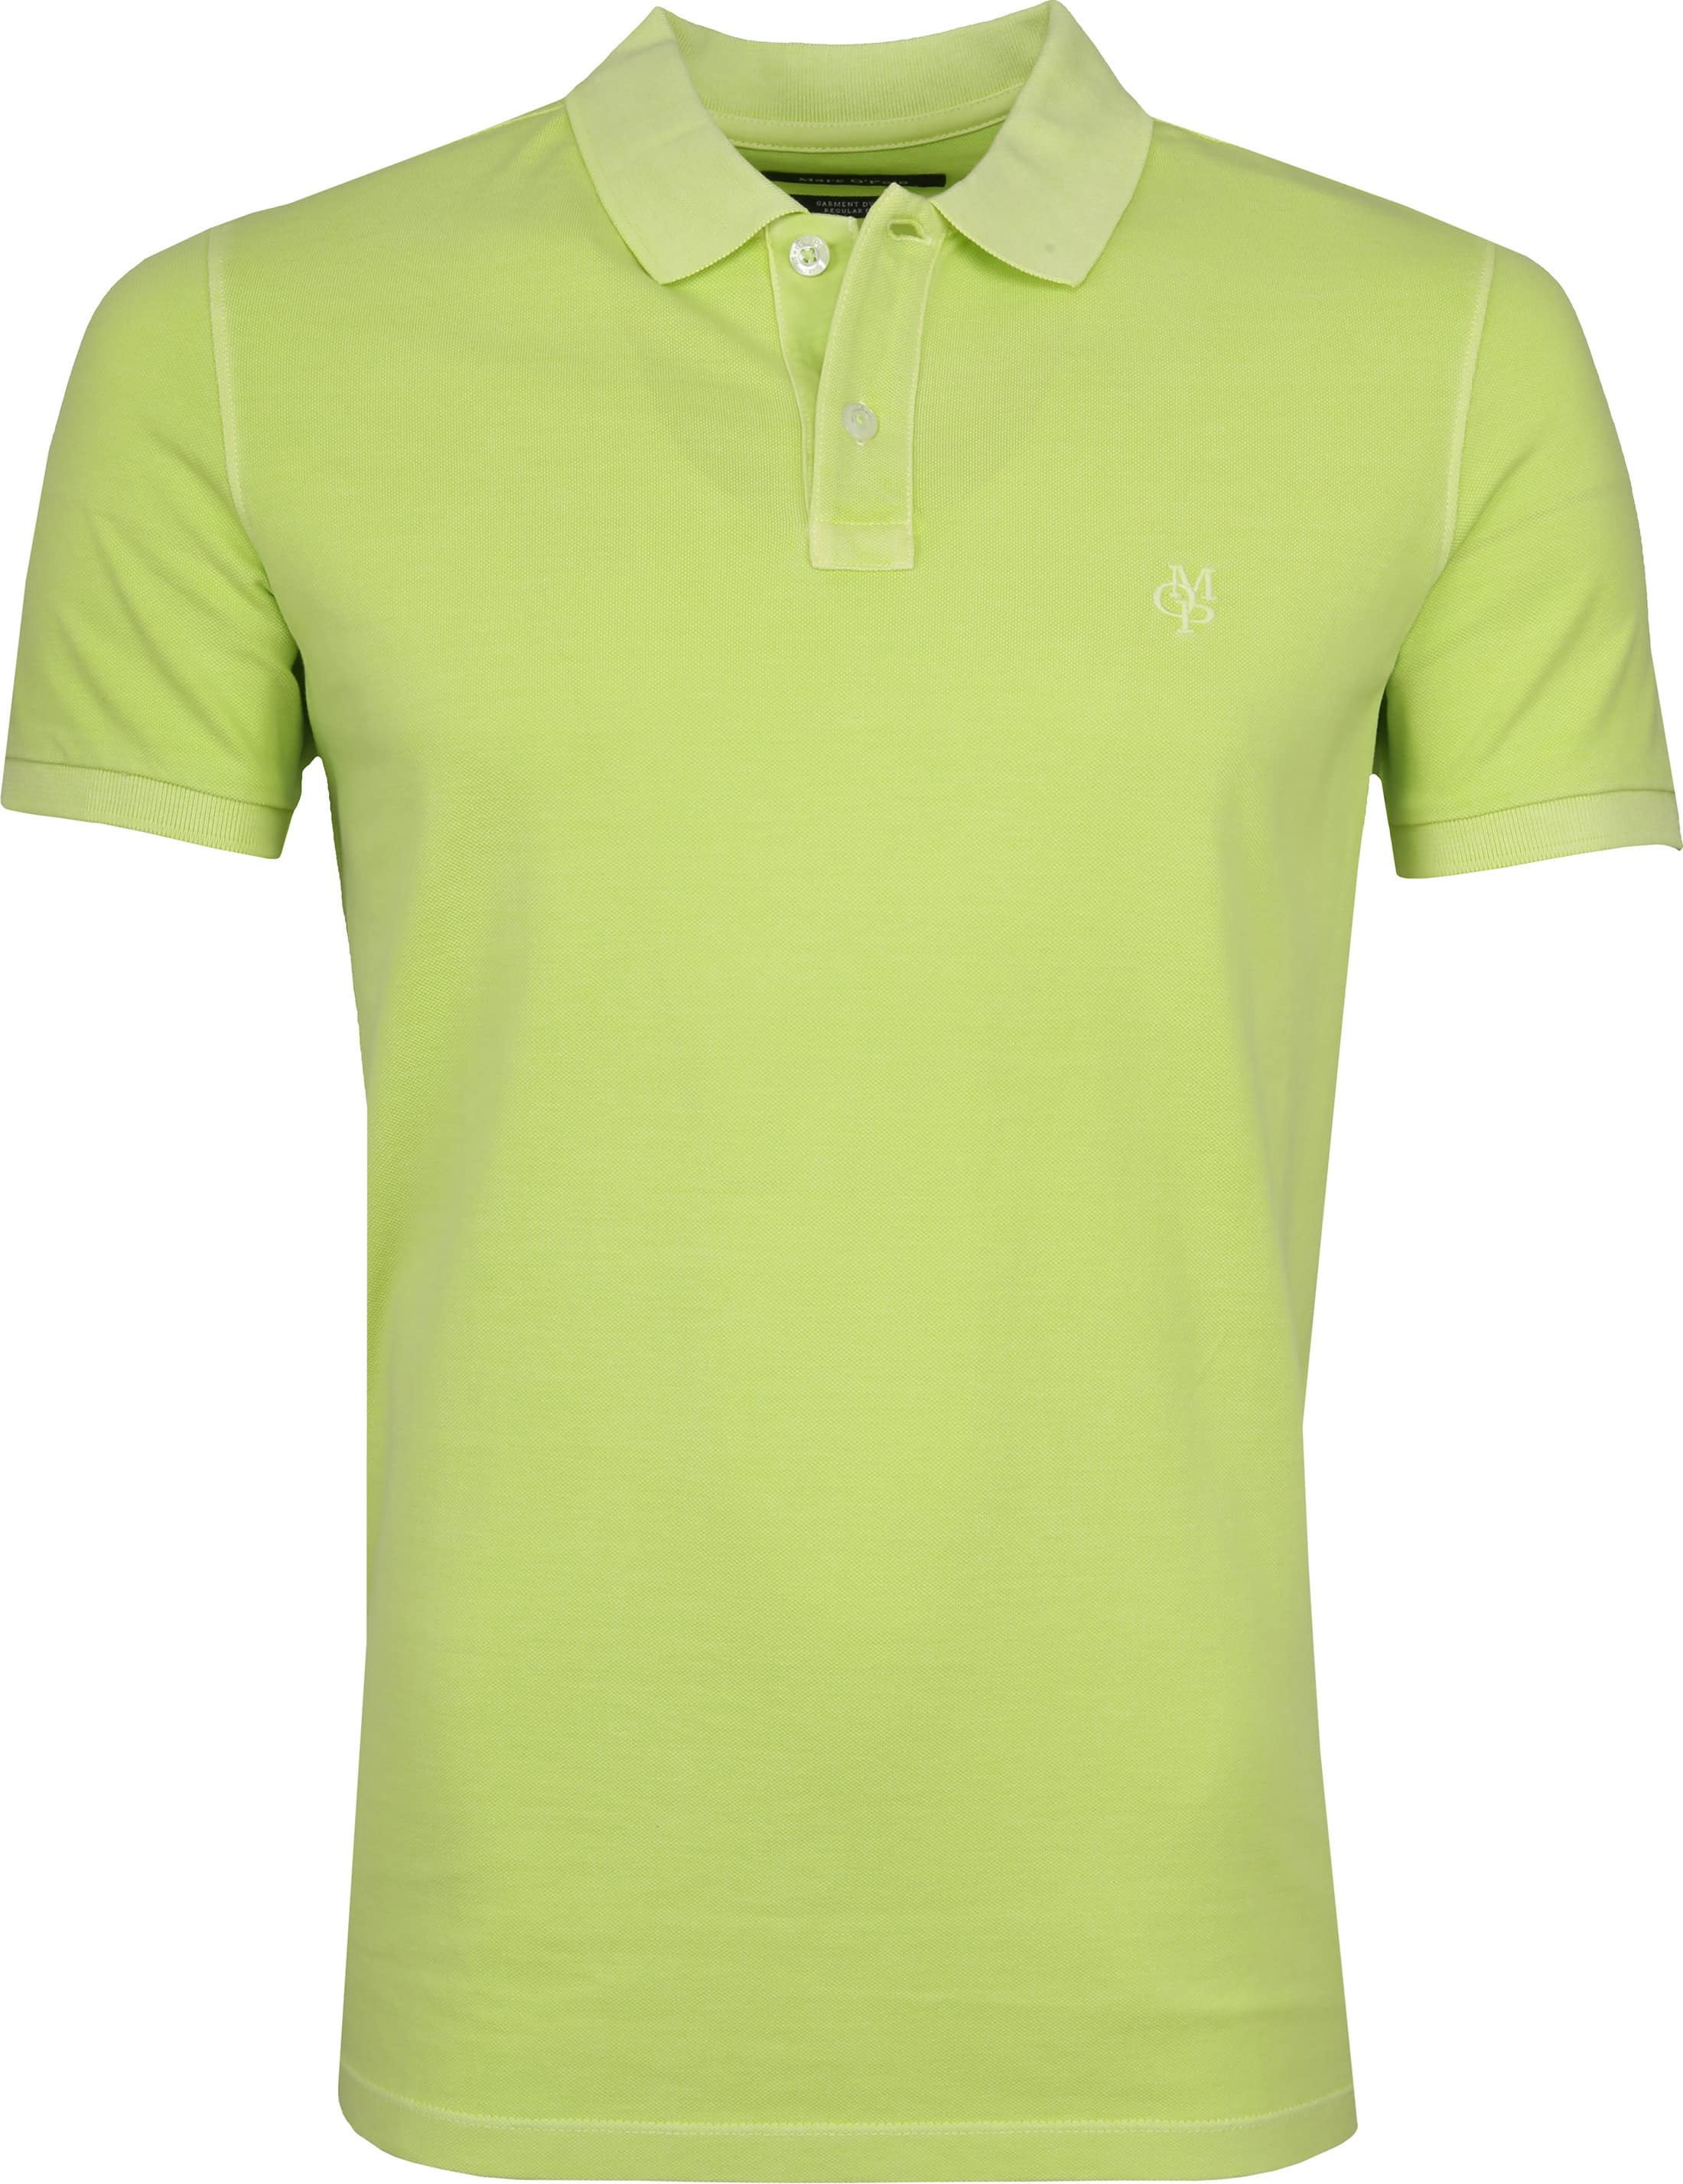 Marc O'Polo Poloshirt Garment Dyed Sharp Green foto 0